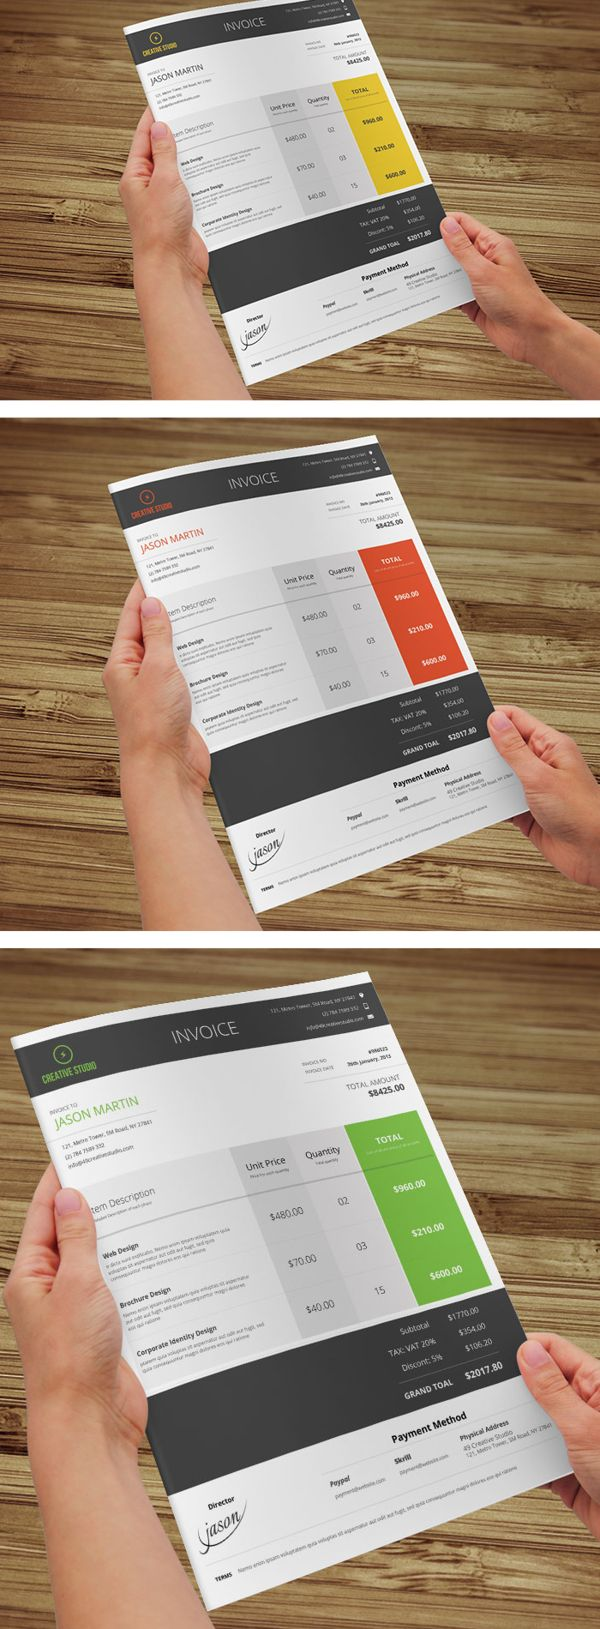 Sending Paypal Invoice Excel  Best Bill Design Images On Pinterest  Bill Obrien Utility  Invoice Number Example Pdf with Pay An Invoice Pdf Metro  Minimal Business Invoice By Bouncy Studio Via Behance Neat Receipts Support Word